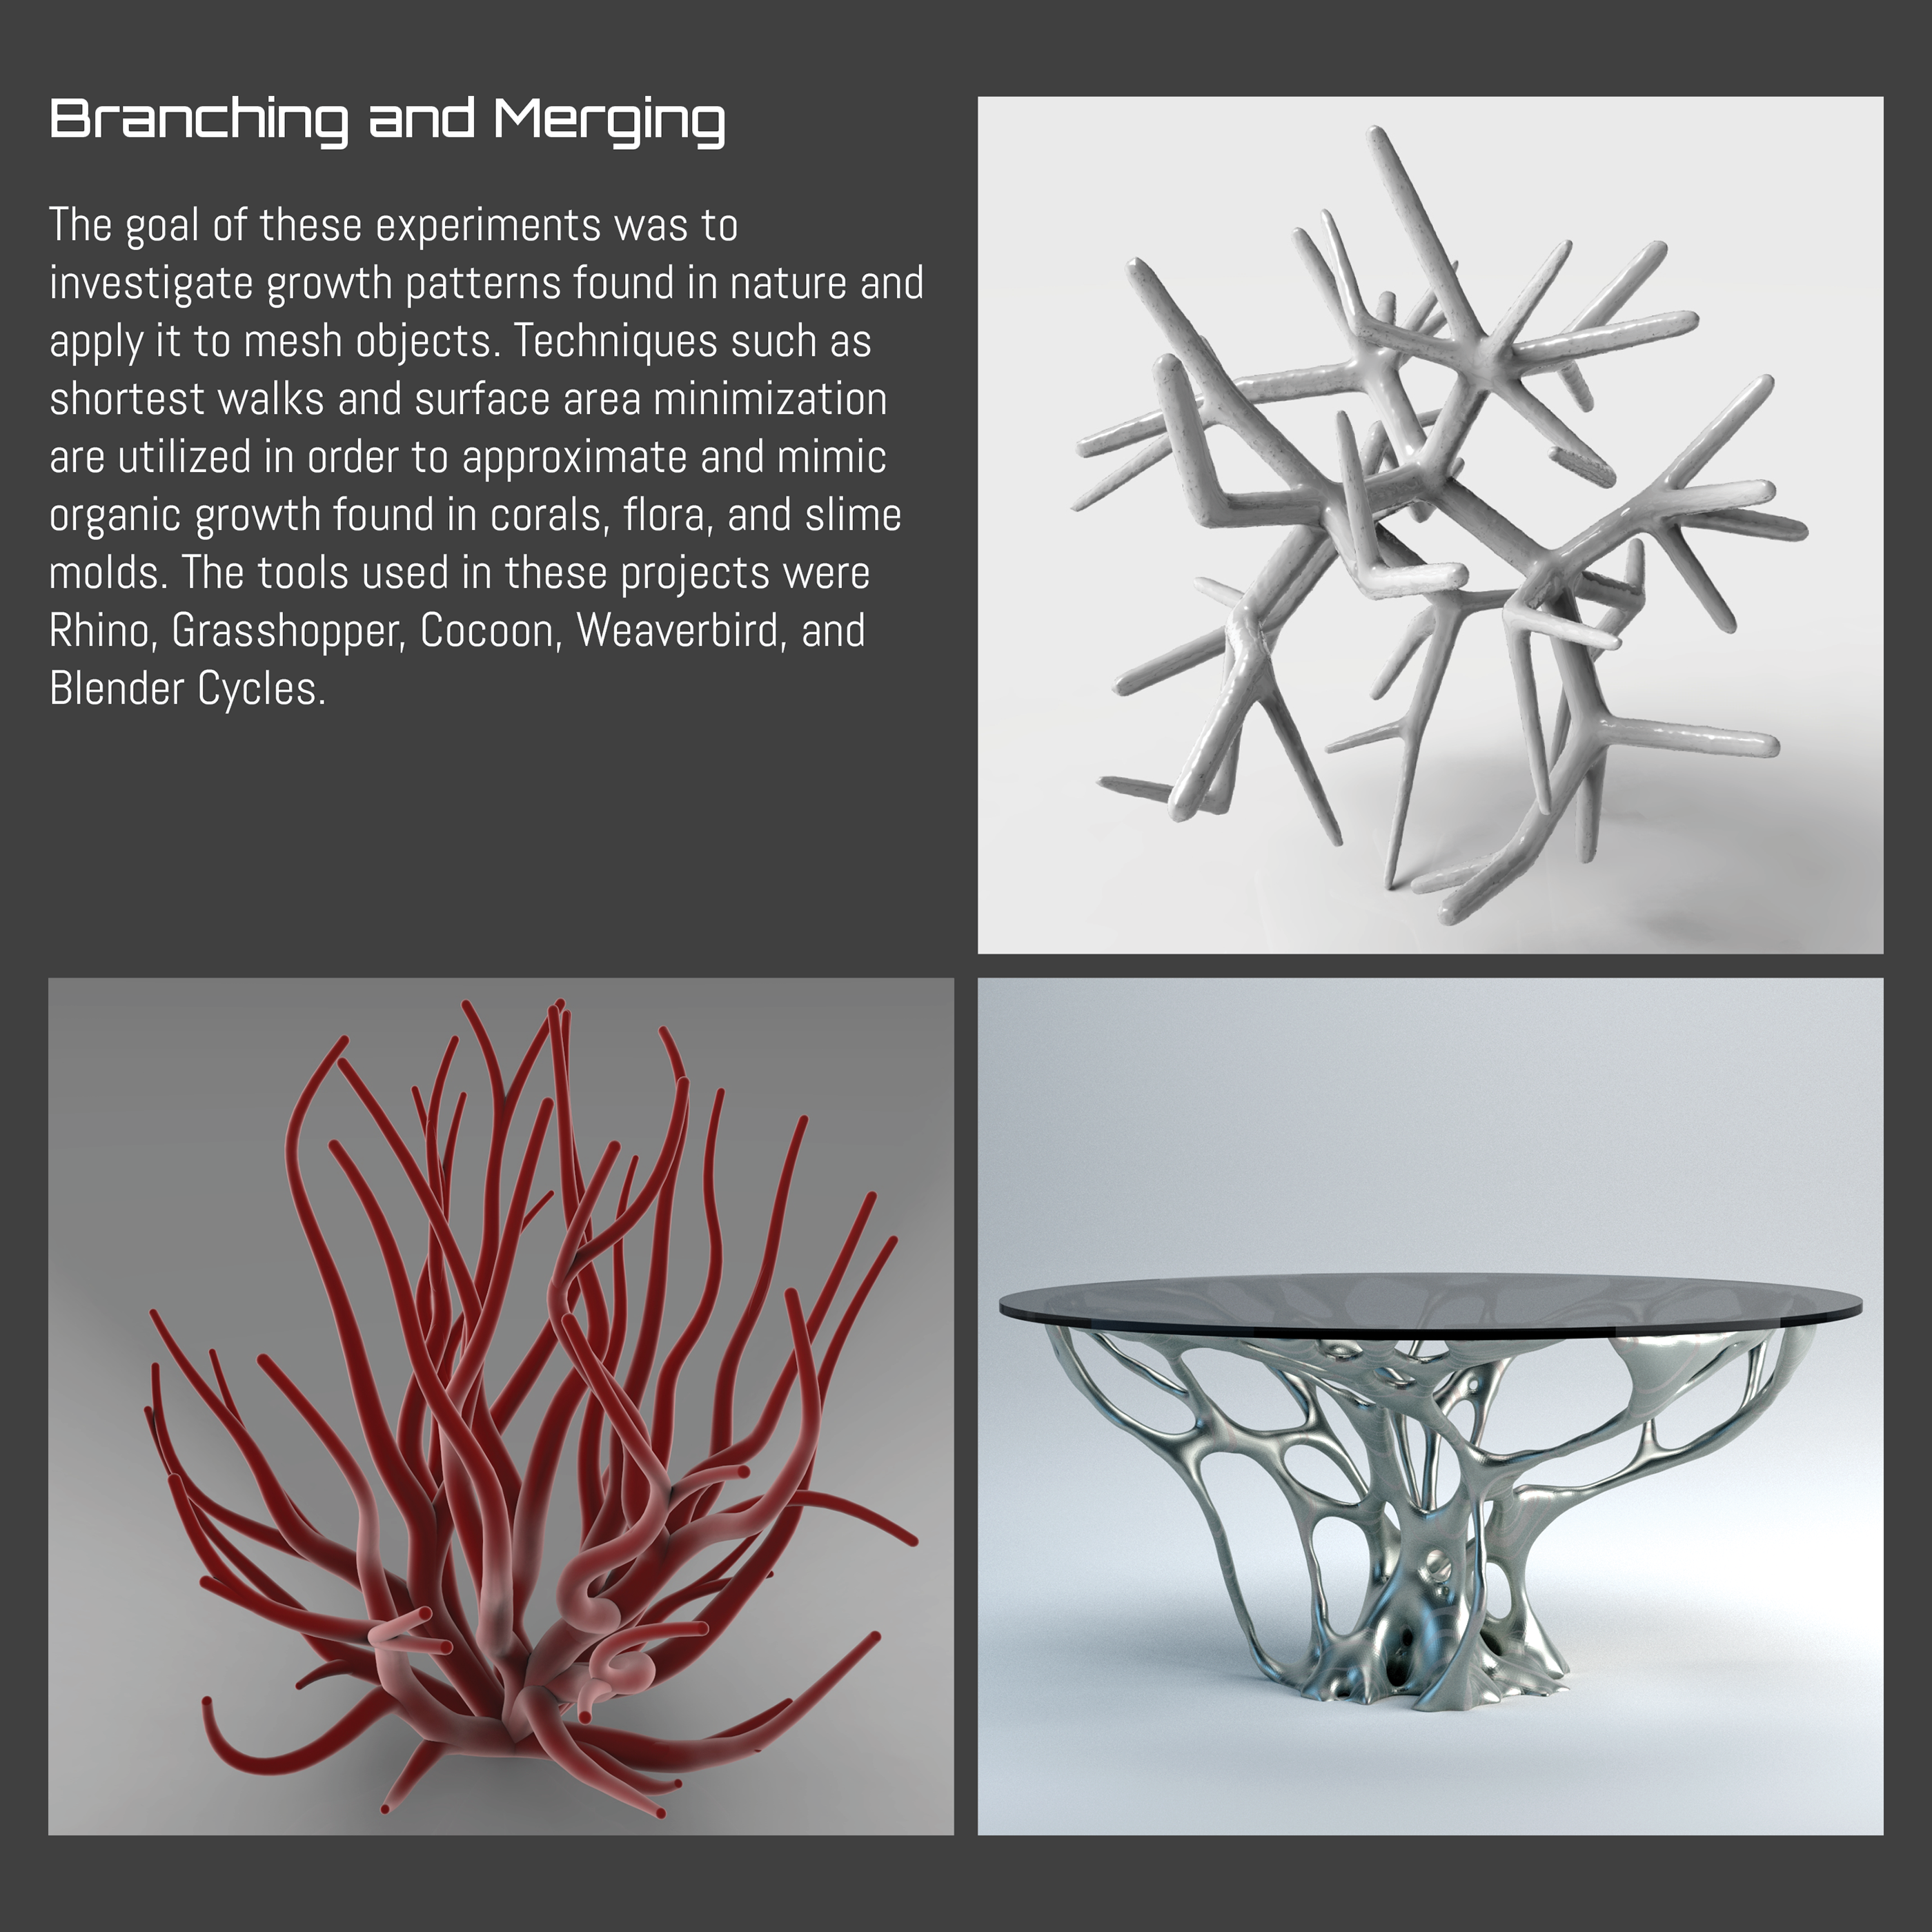 Algorithms and Explorations on Behance